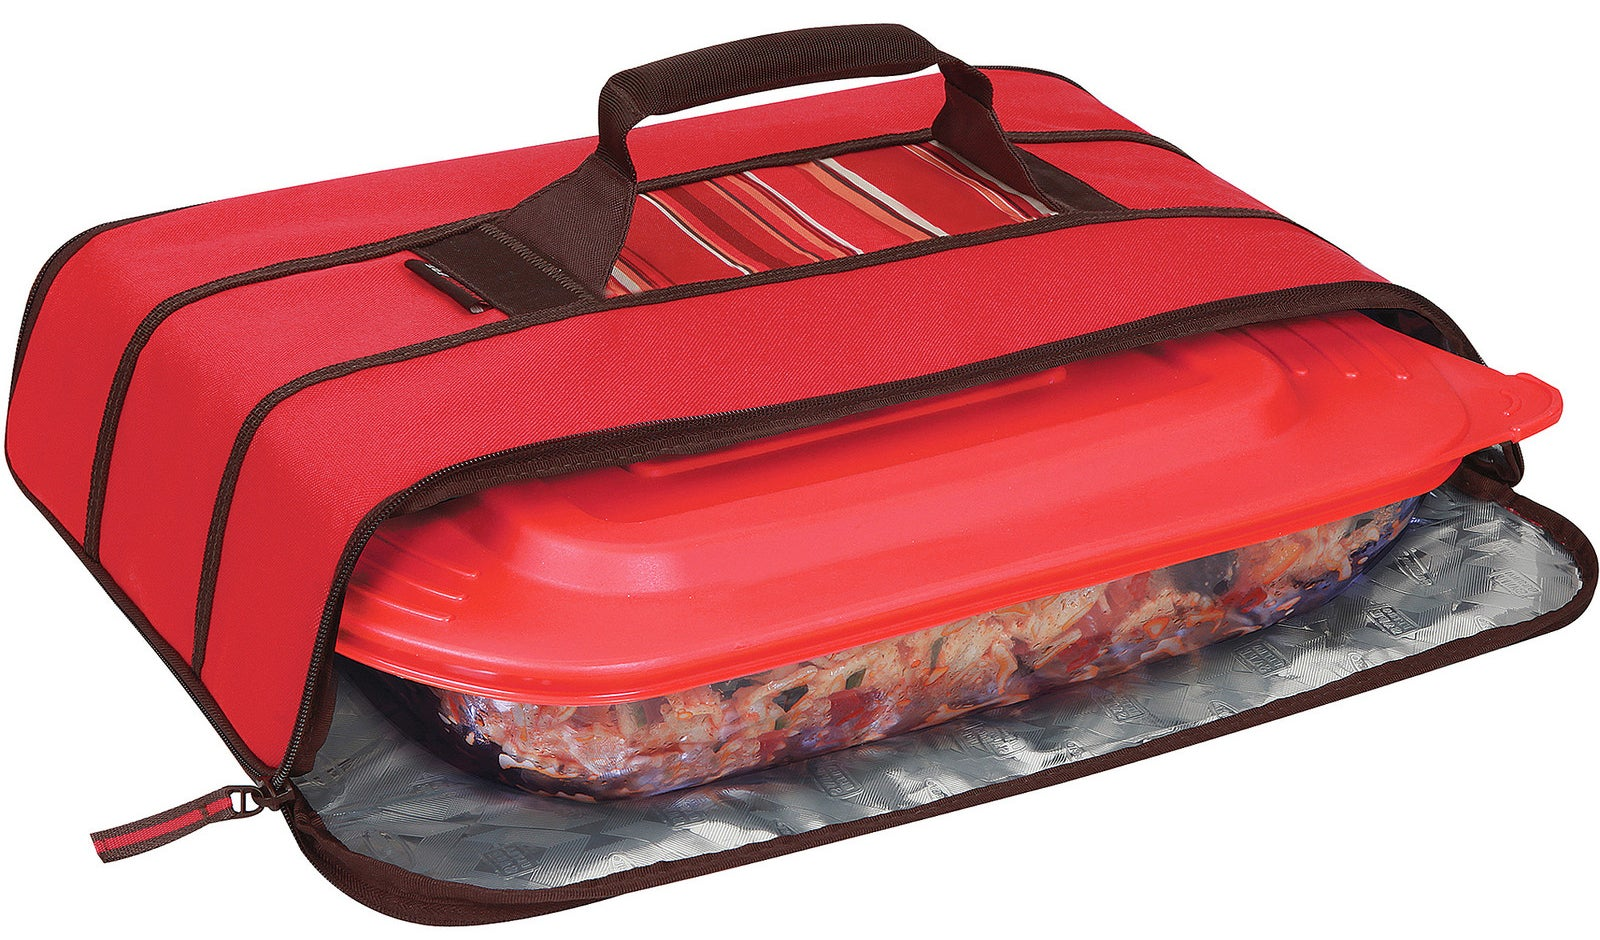 A durable potlucker with an easy-clean lining and radiant barrier to help seal in heat for hours.